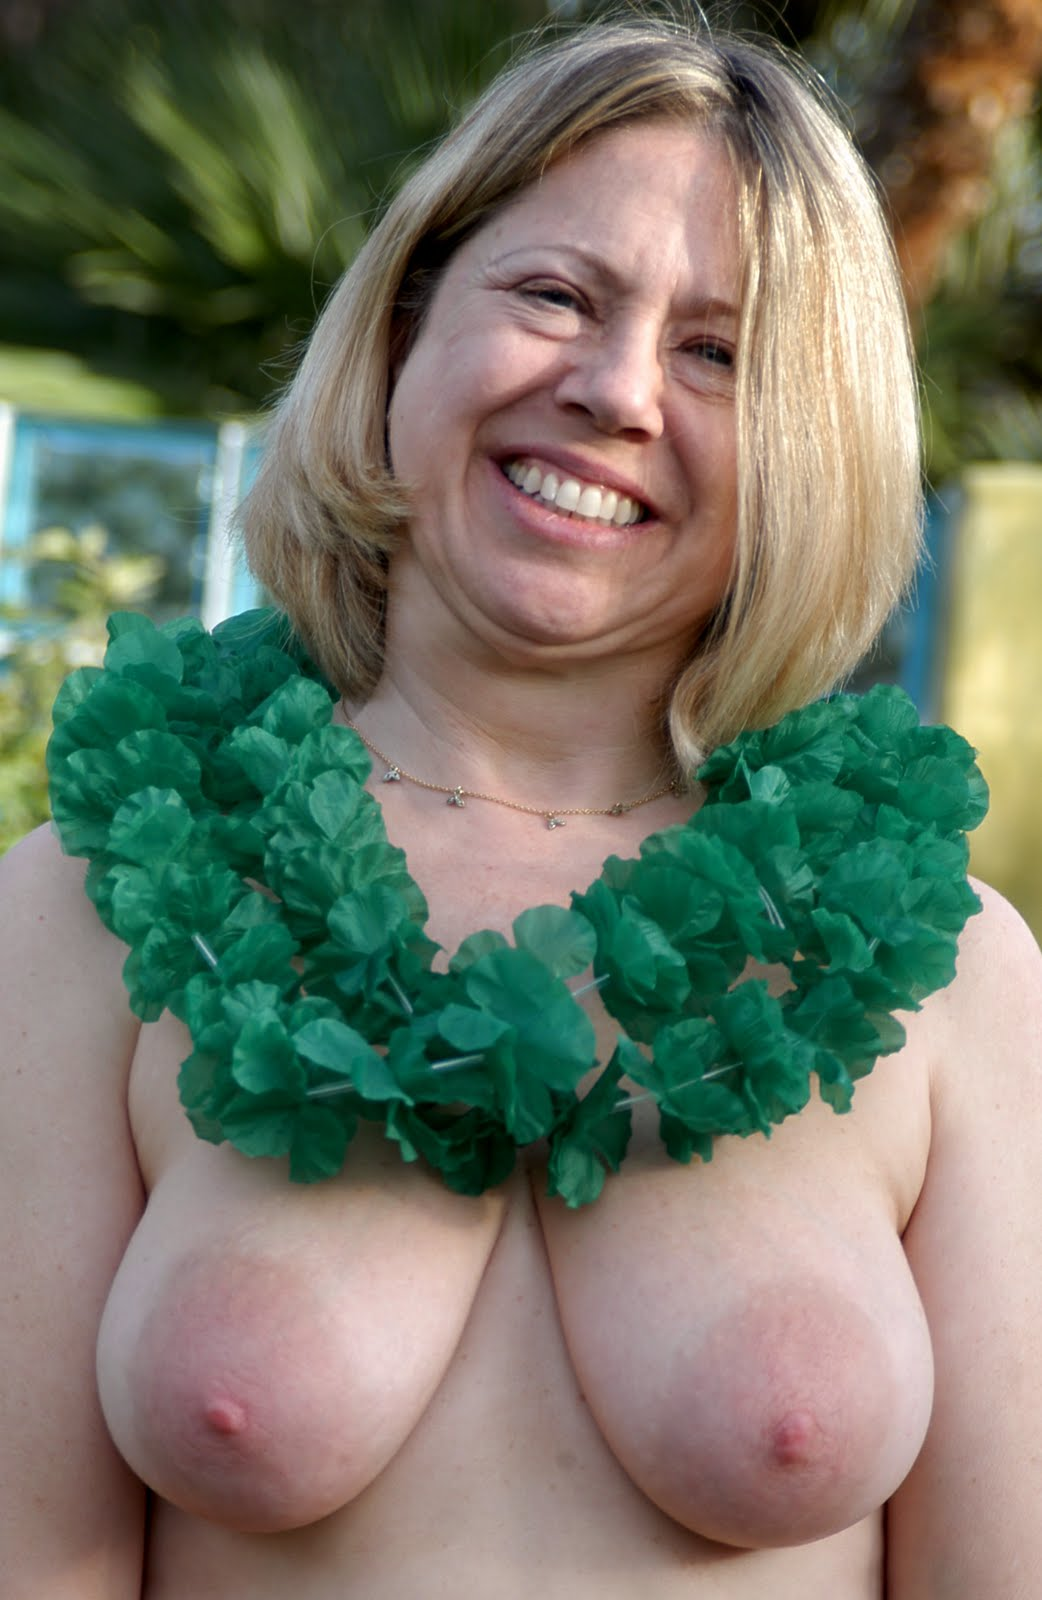 It's almost happy naked St. Patrick's Day party time in Palm Springs ...